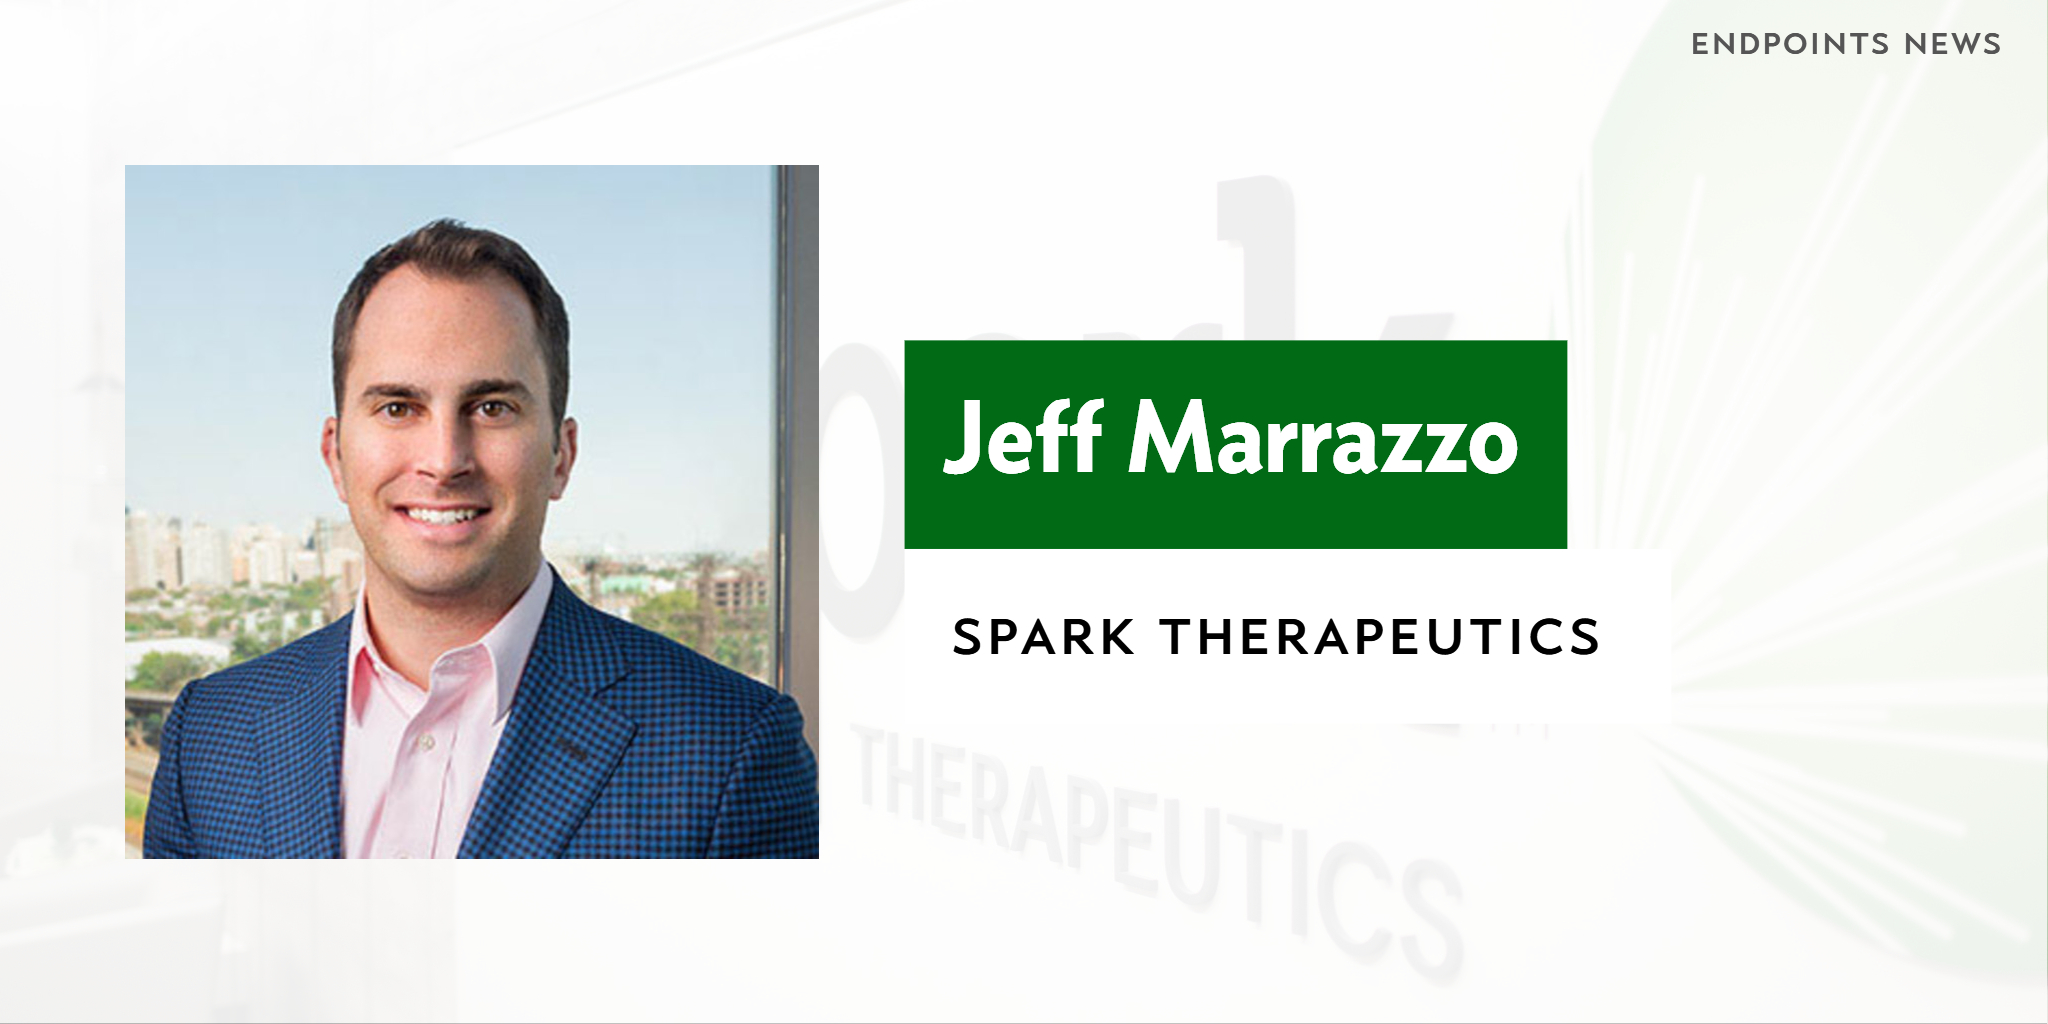 Spark sets off gene therapy debate with $850K sticker on Luxturna